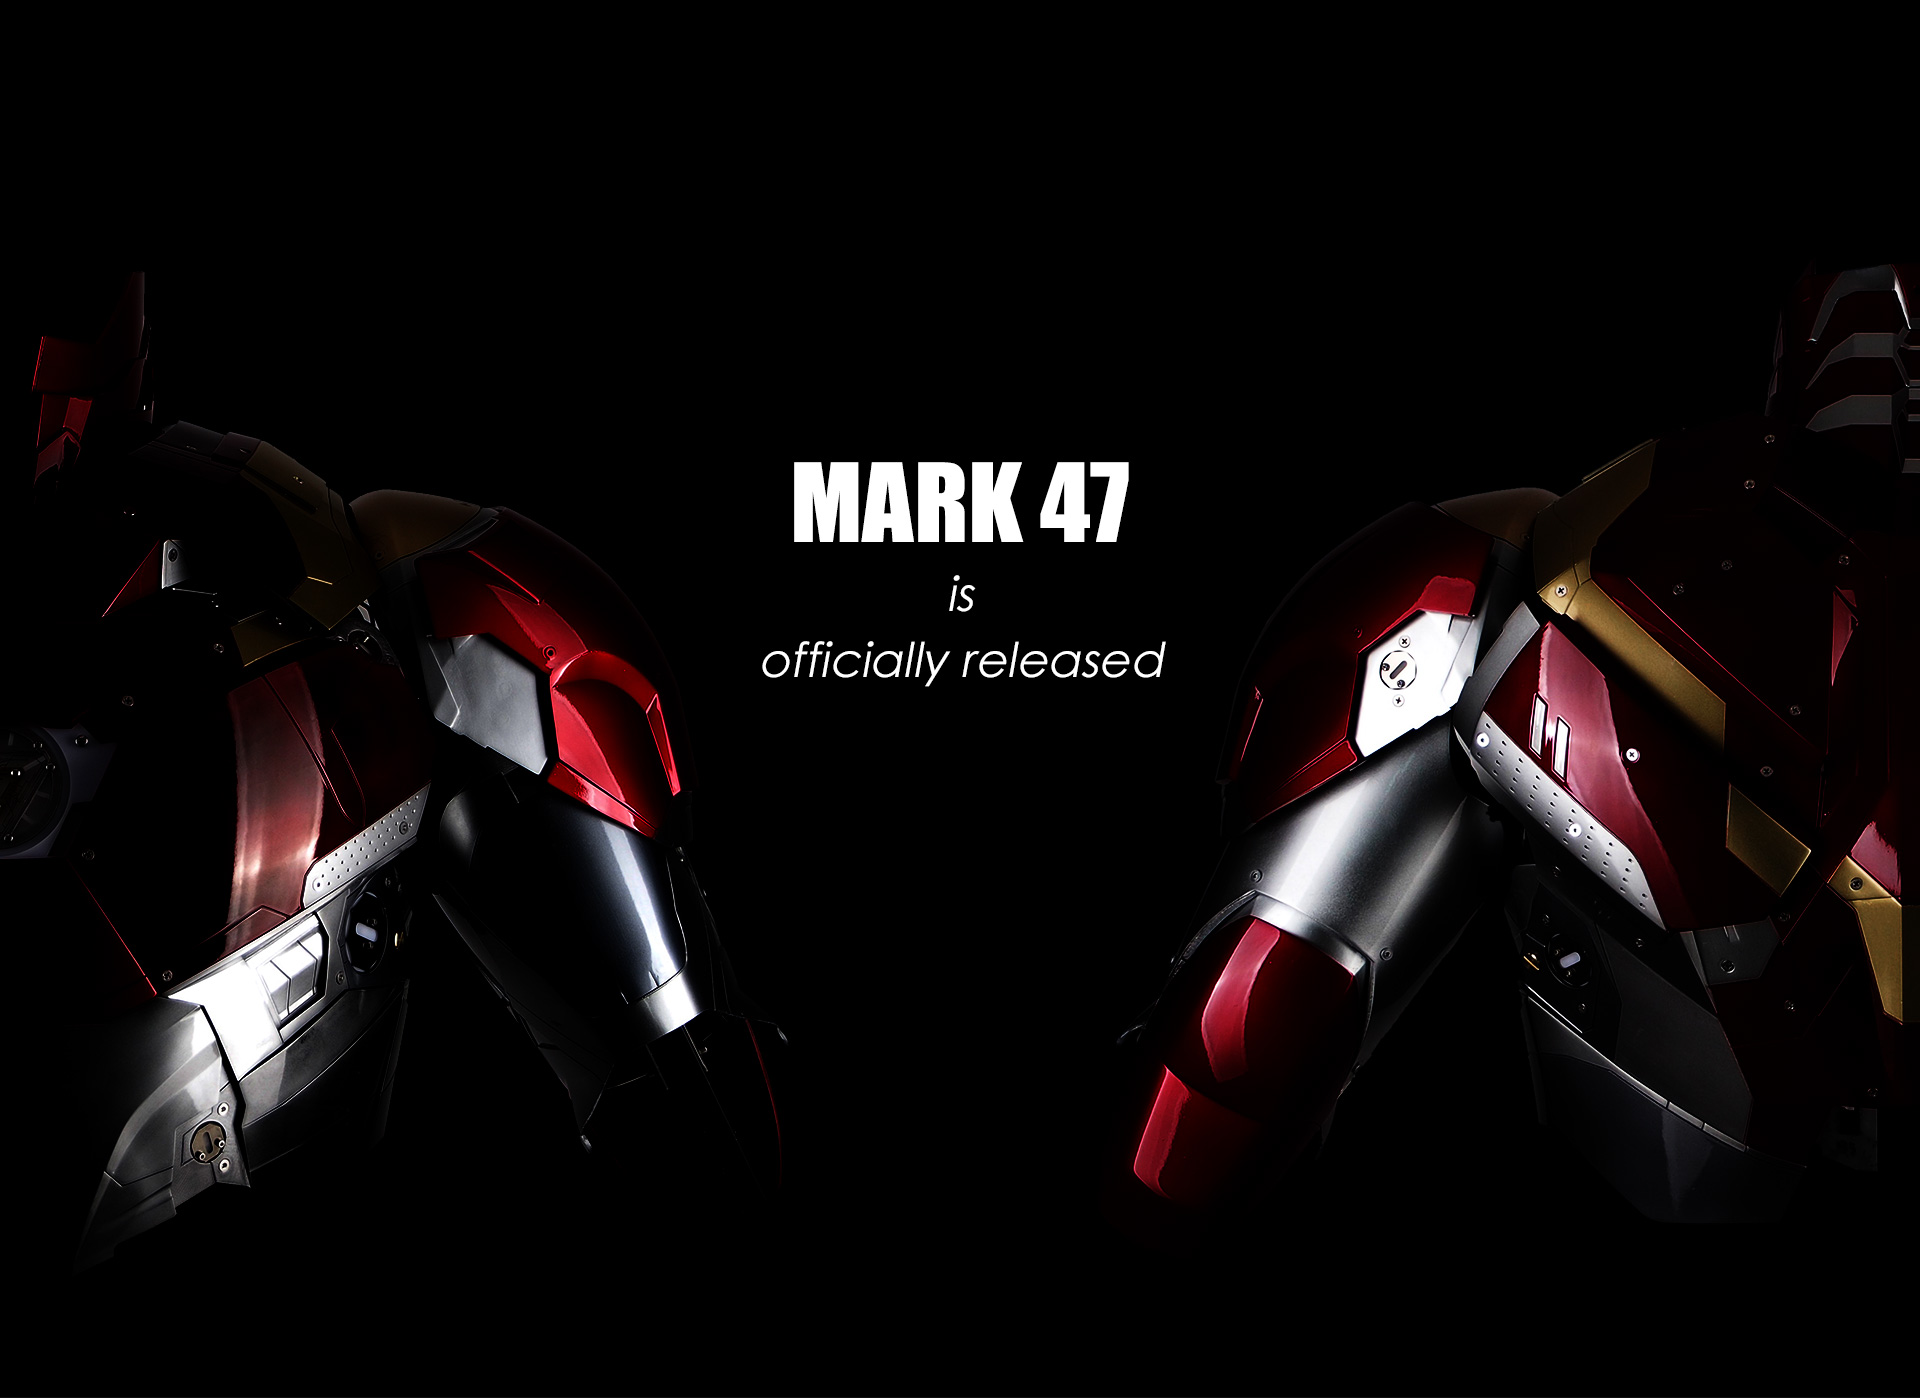 wearable Iron Man Mark 47 46 armor costume suit officially released